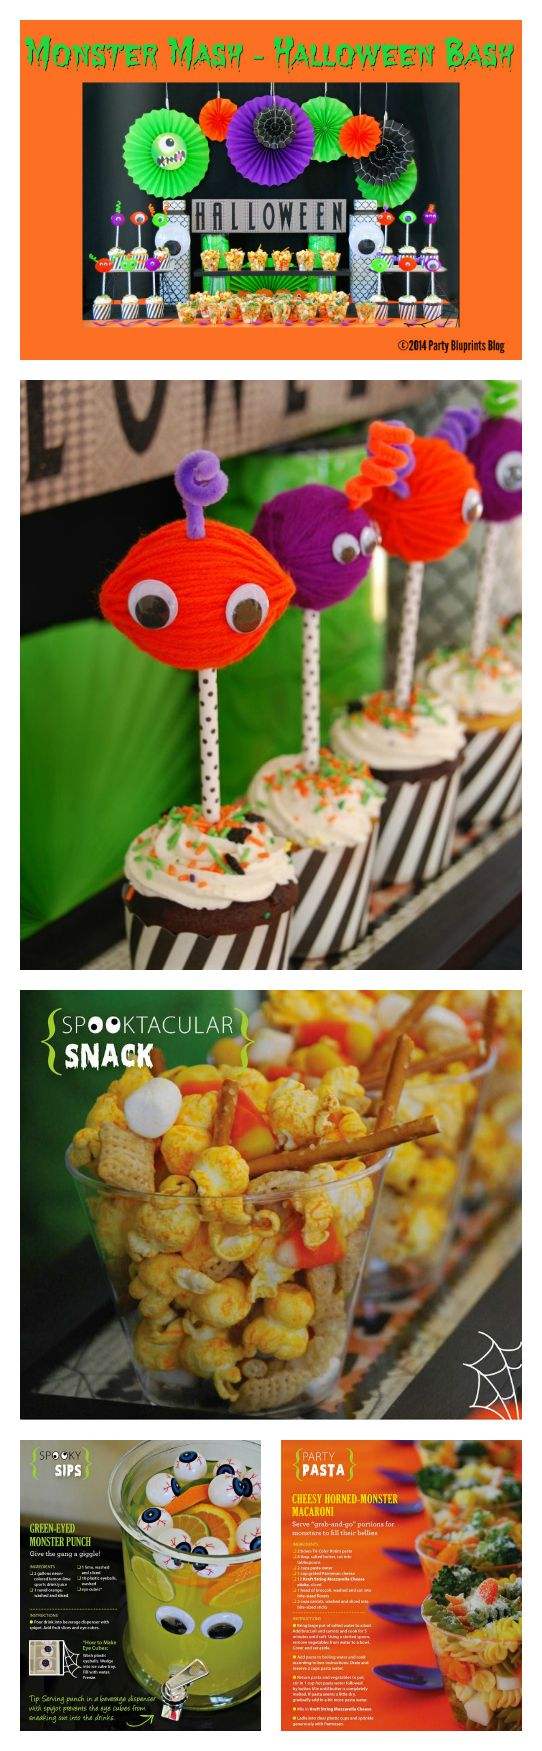 326 best Halloween Tricks and Treats! images on Pinterest ...